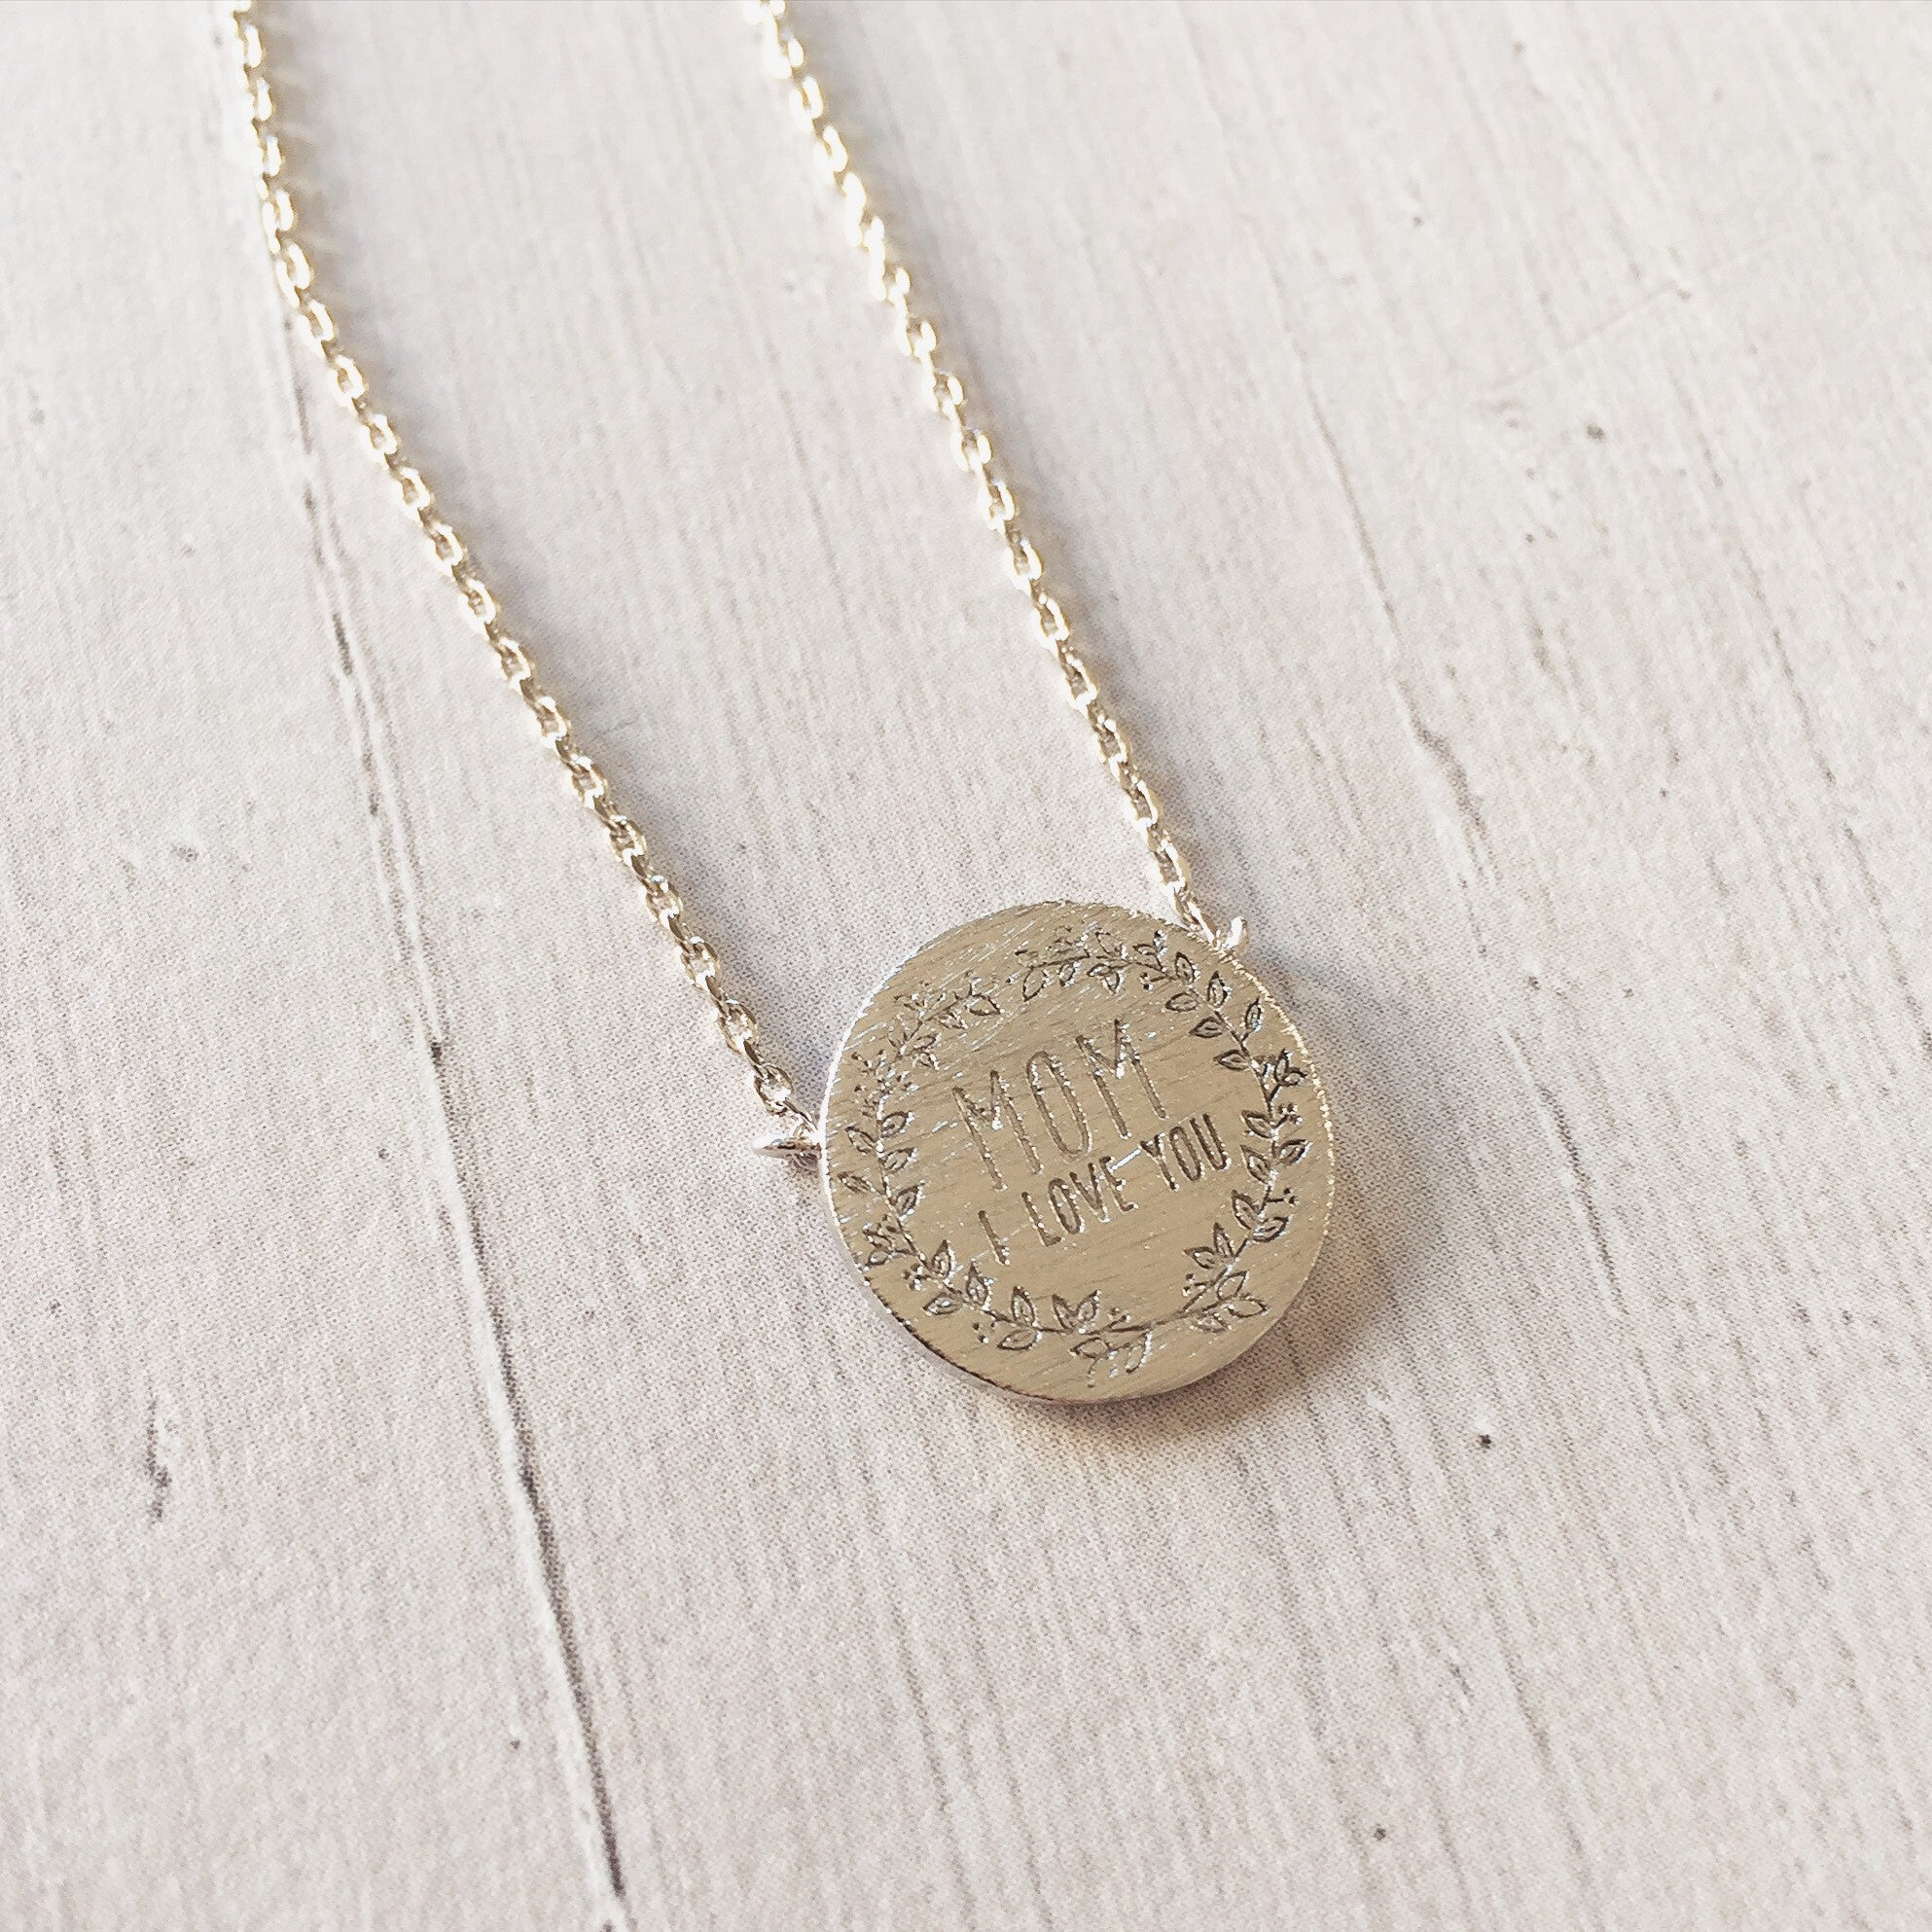 MOM I LOVE YOU- Necklace